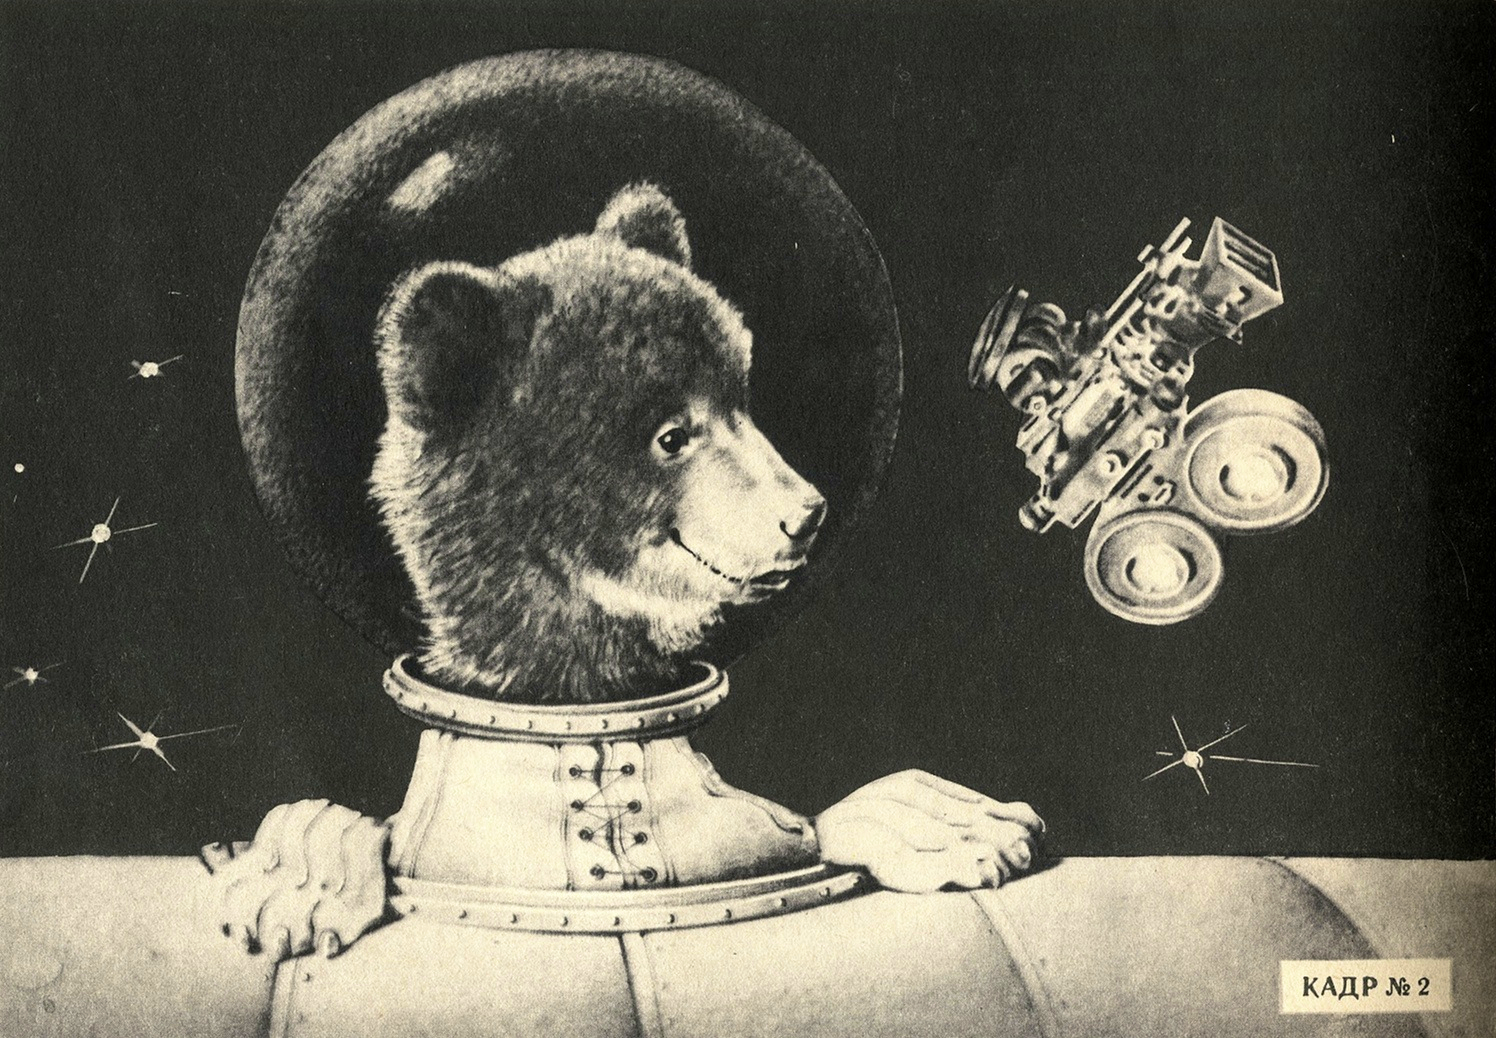 B. Mikhailov, Bear in Space: How to fly [Б. Михаилов, Медведь в космос: Как летал], 1970